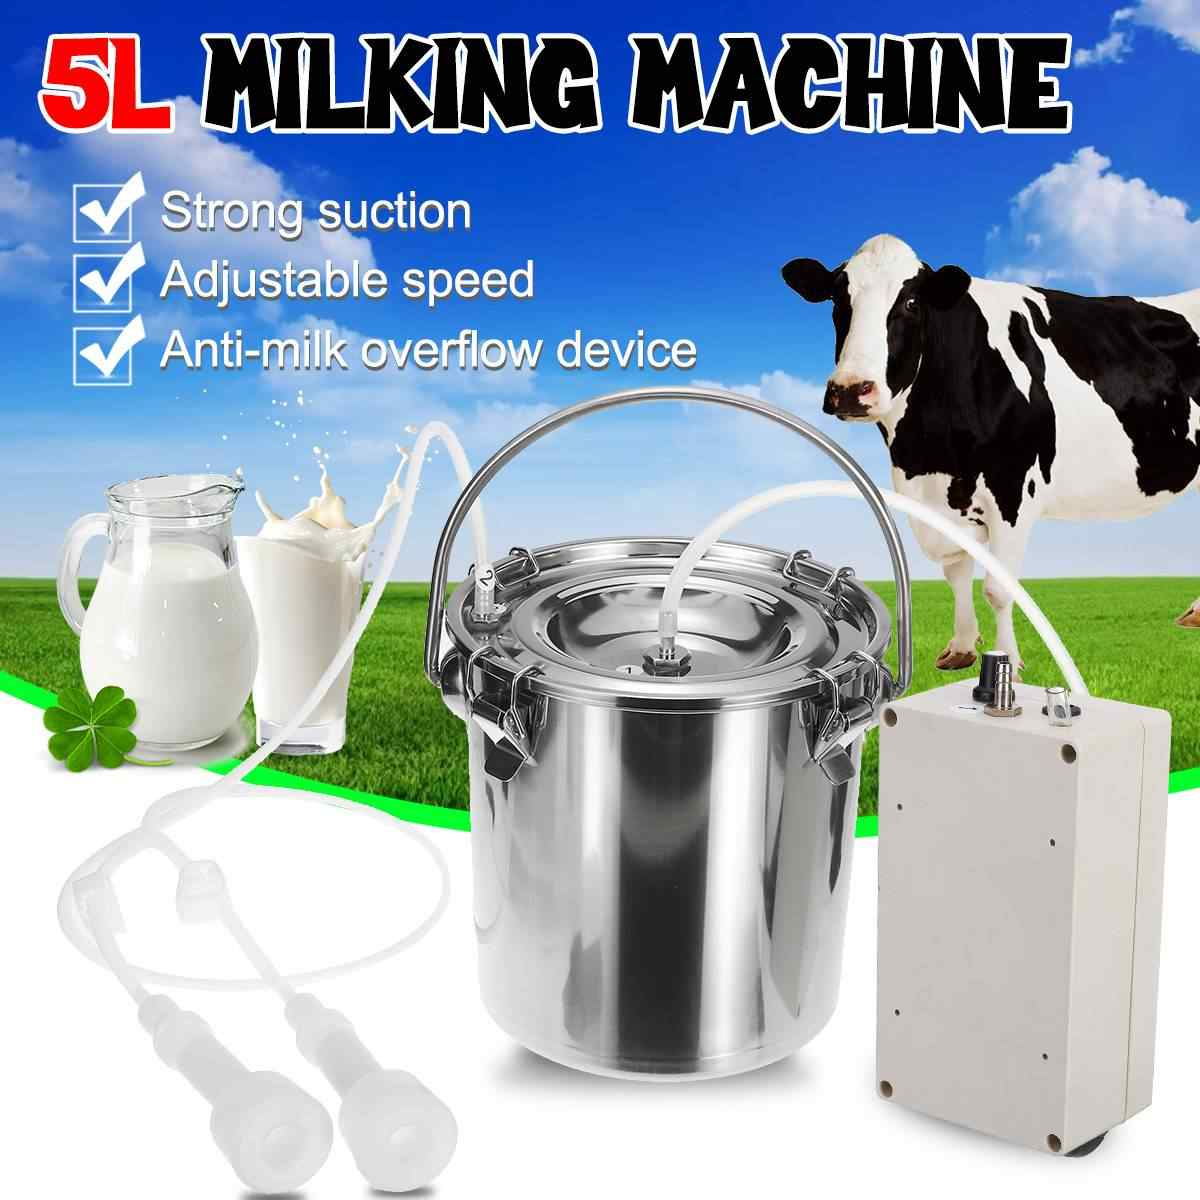 5L Portable Electric Milking Machine for Cows Sheep Adjustable Speed Pump Stainless Steel Bucket Goat Milker Vacuum Pump Suction